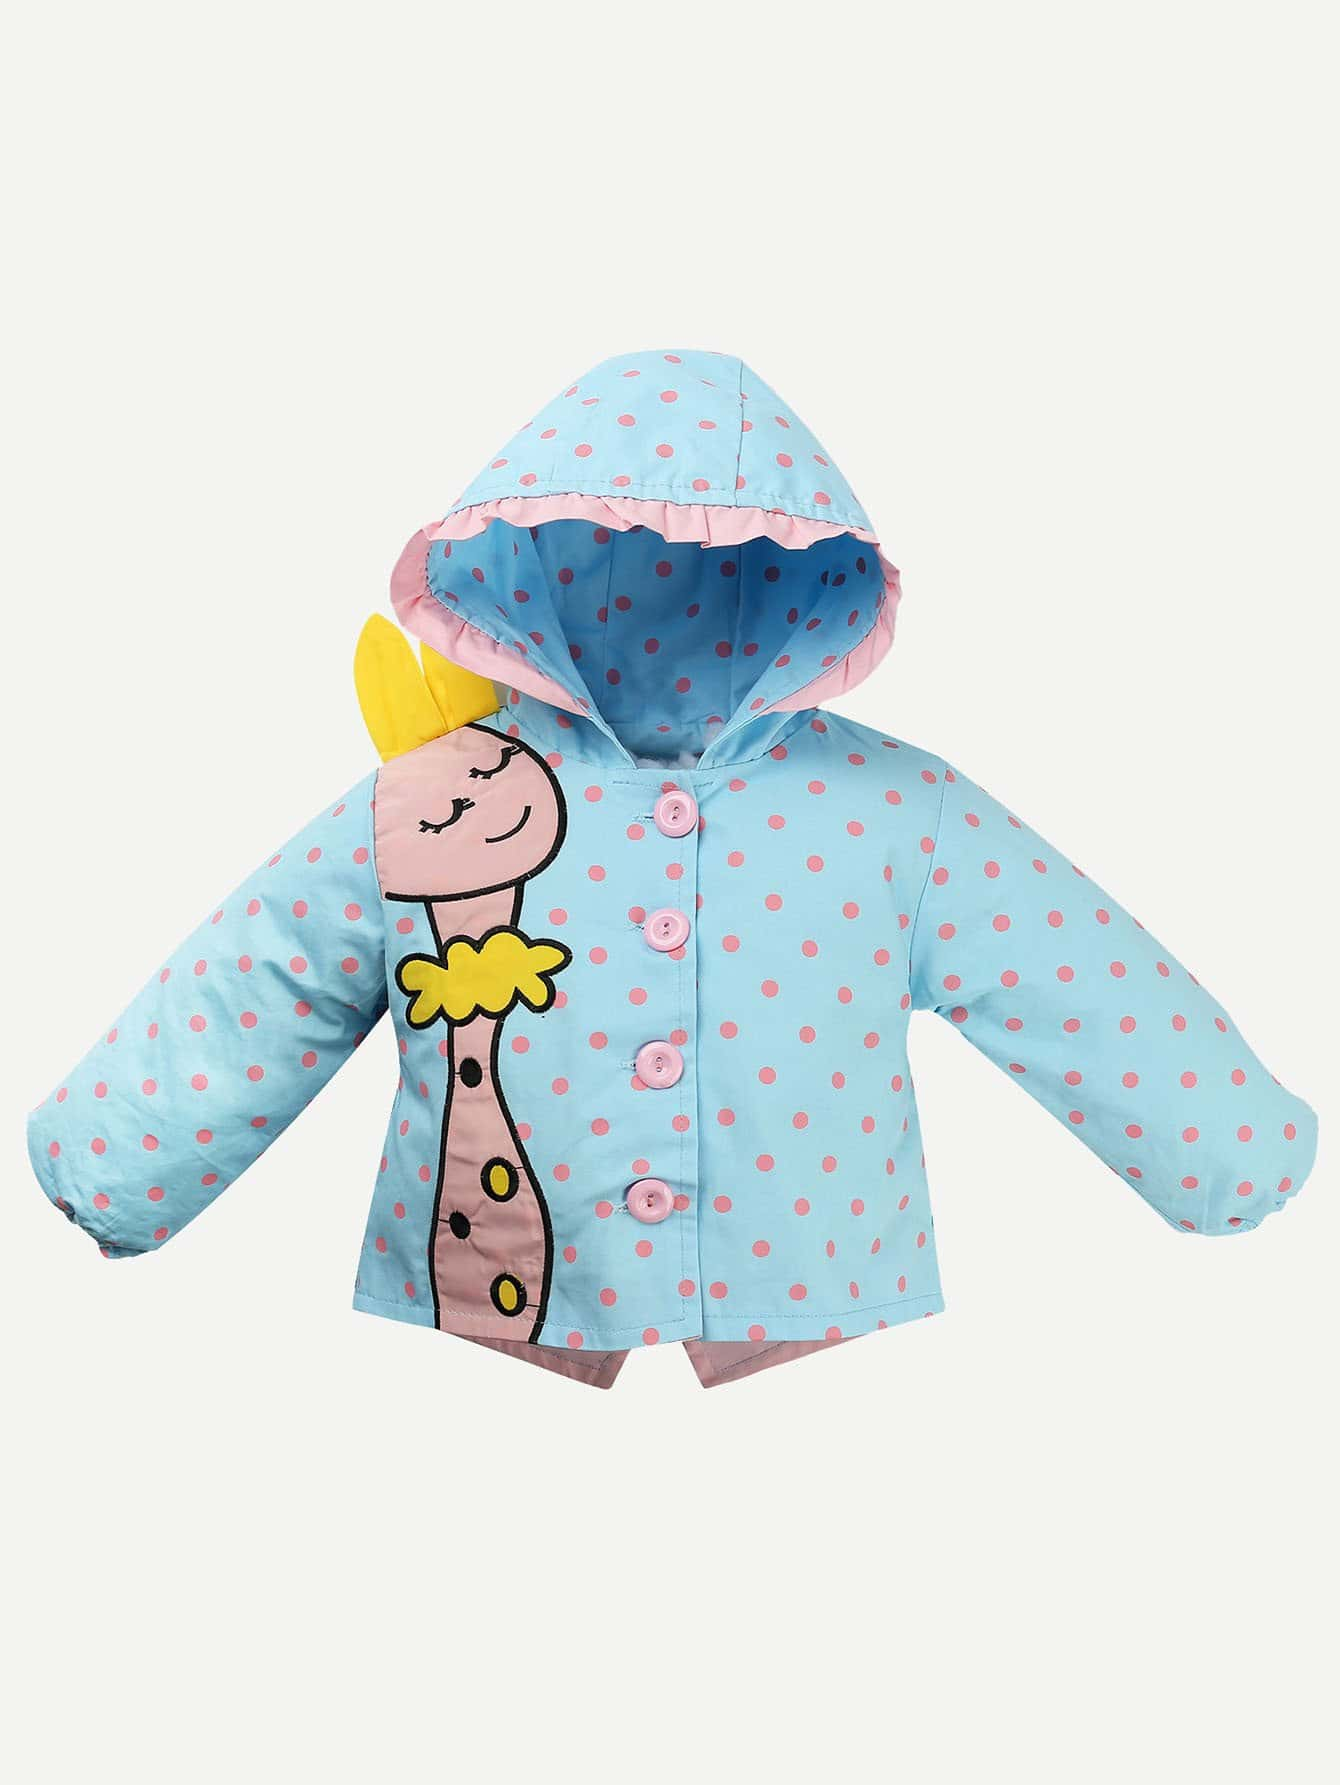 Girls Cartoon Embroidered Spot Hooded Coat 10pcs hk70dr2119 for tricolor gs700 7 tablet touch screen digiziter fpc tp070255 k71 01 hs1285 black and white color